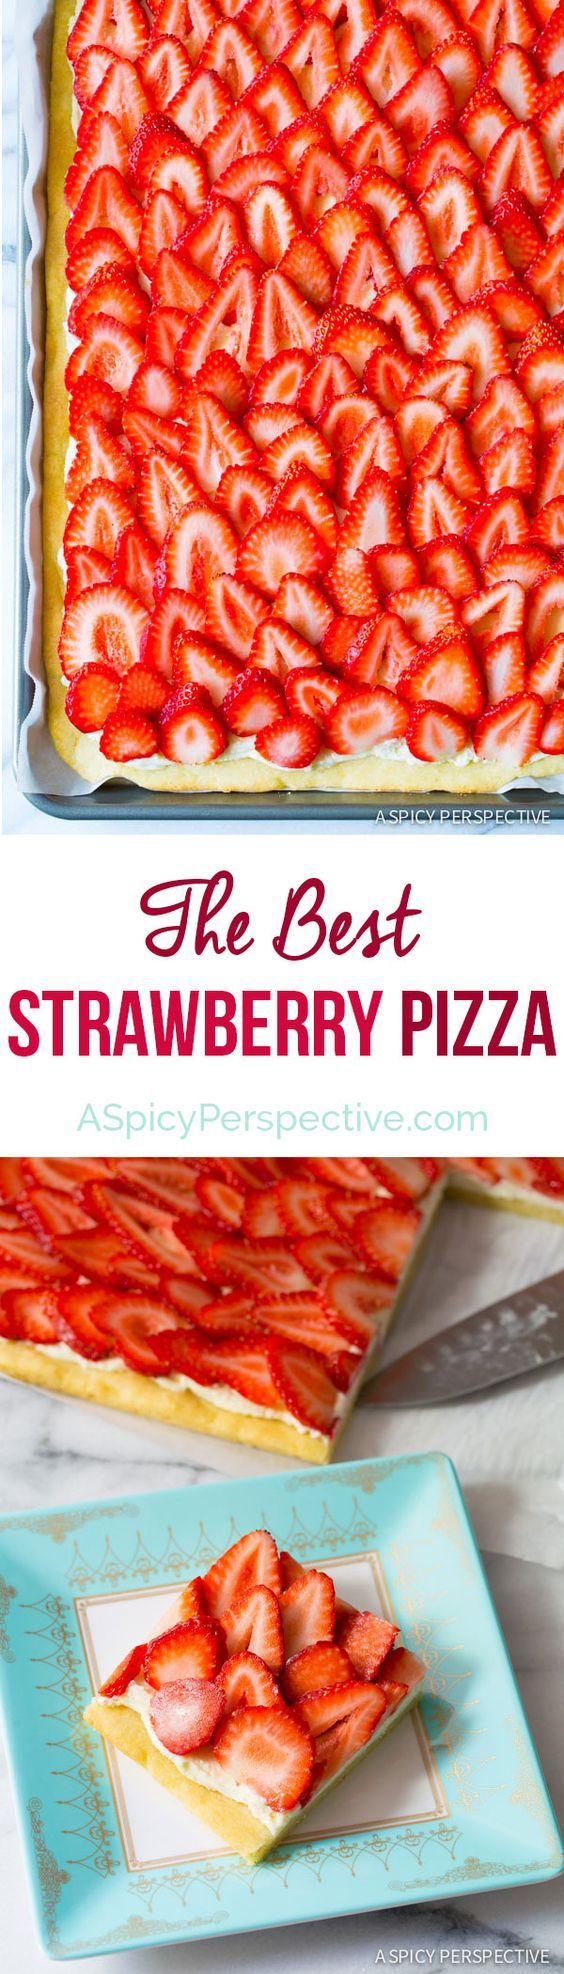 The Absolute BEST Strawberry Pizza - on ASpicyPerspective... strawberry summer